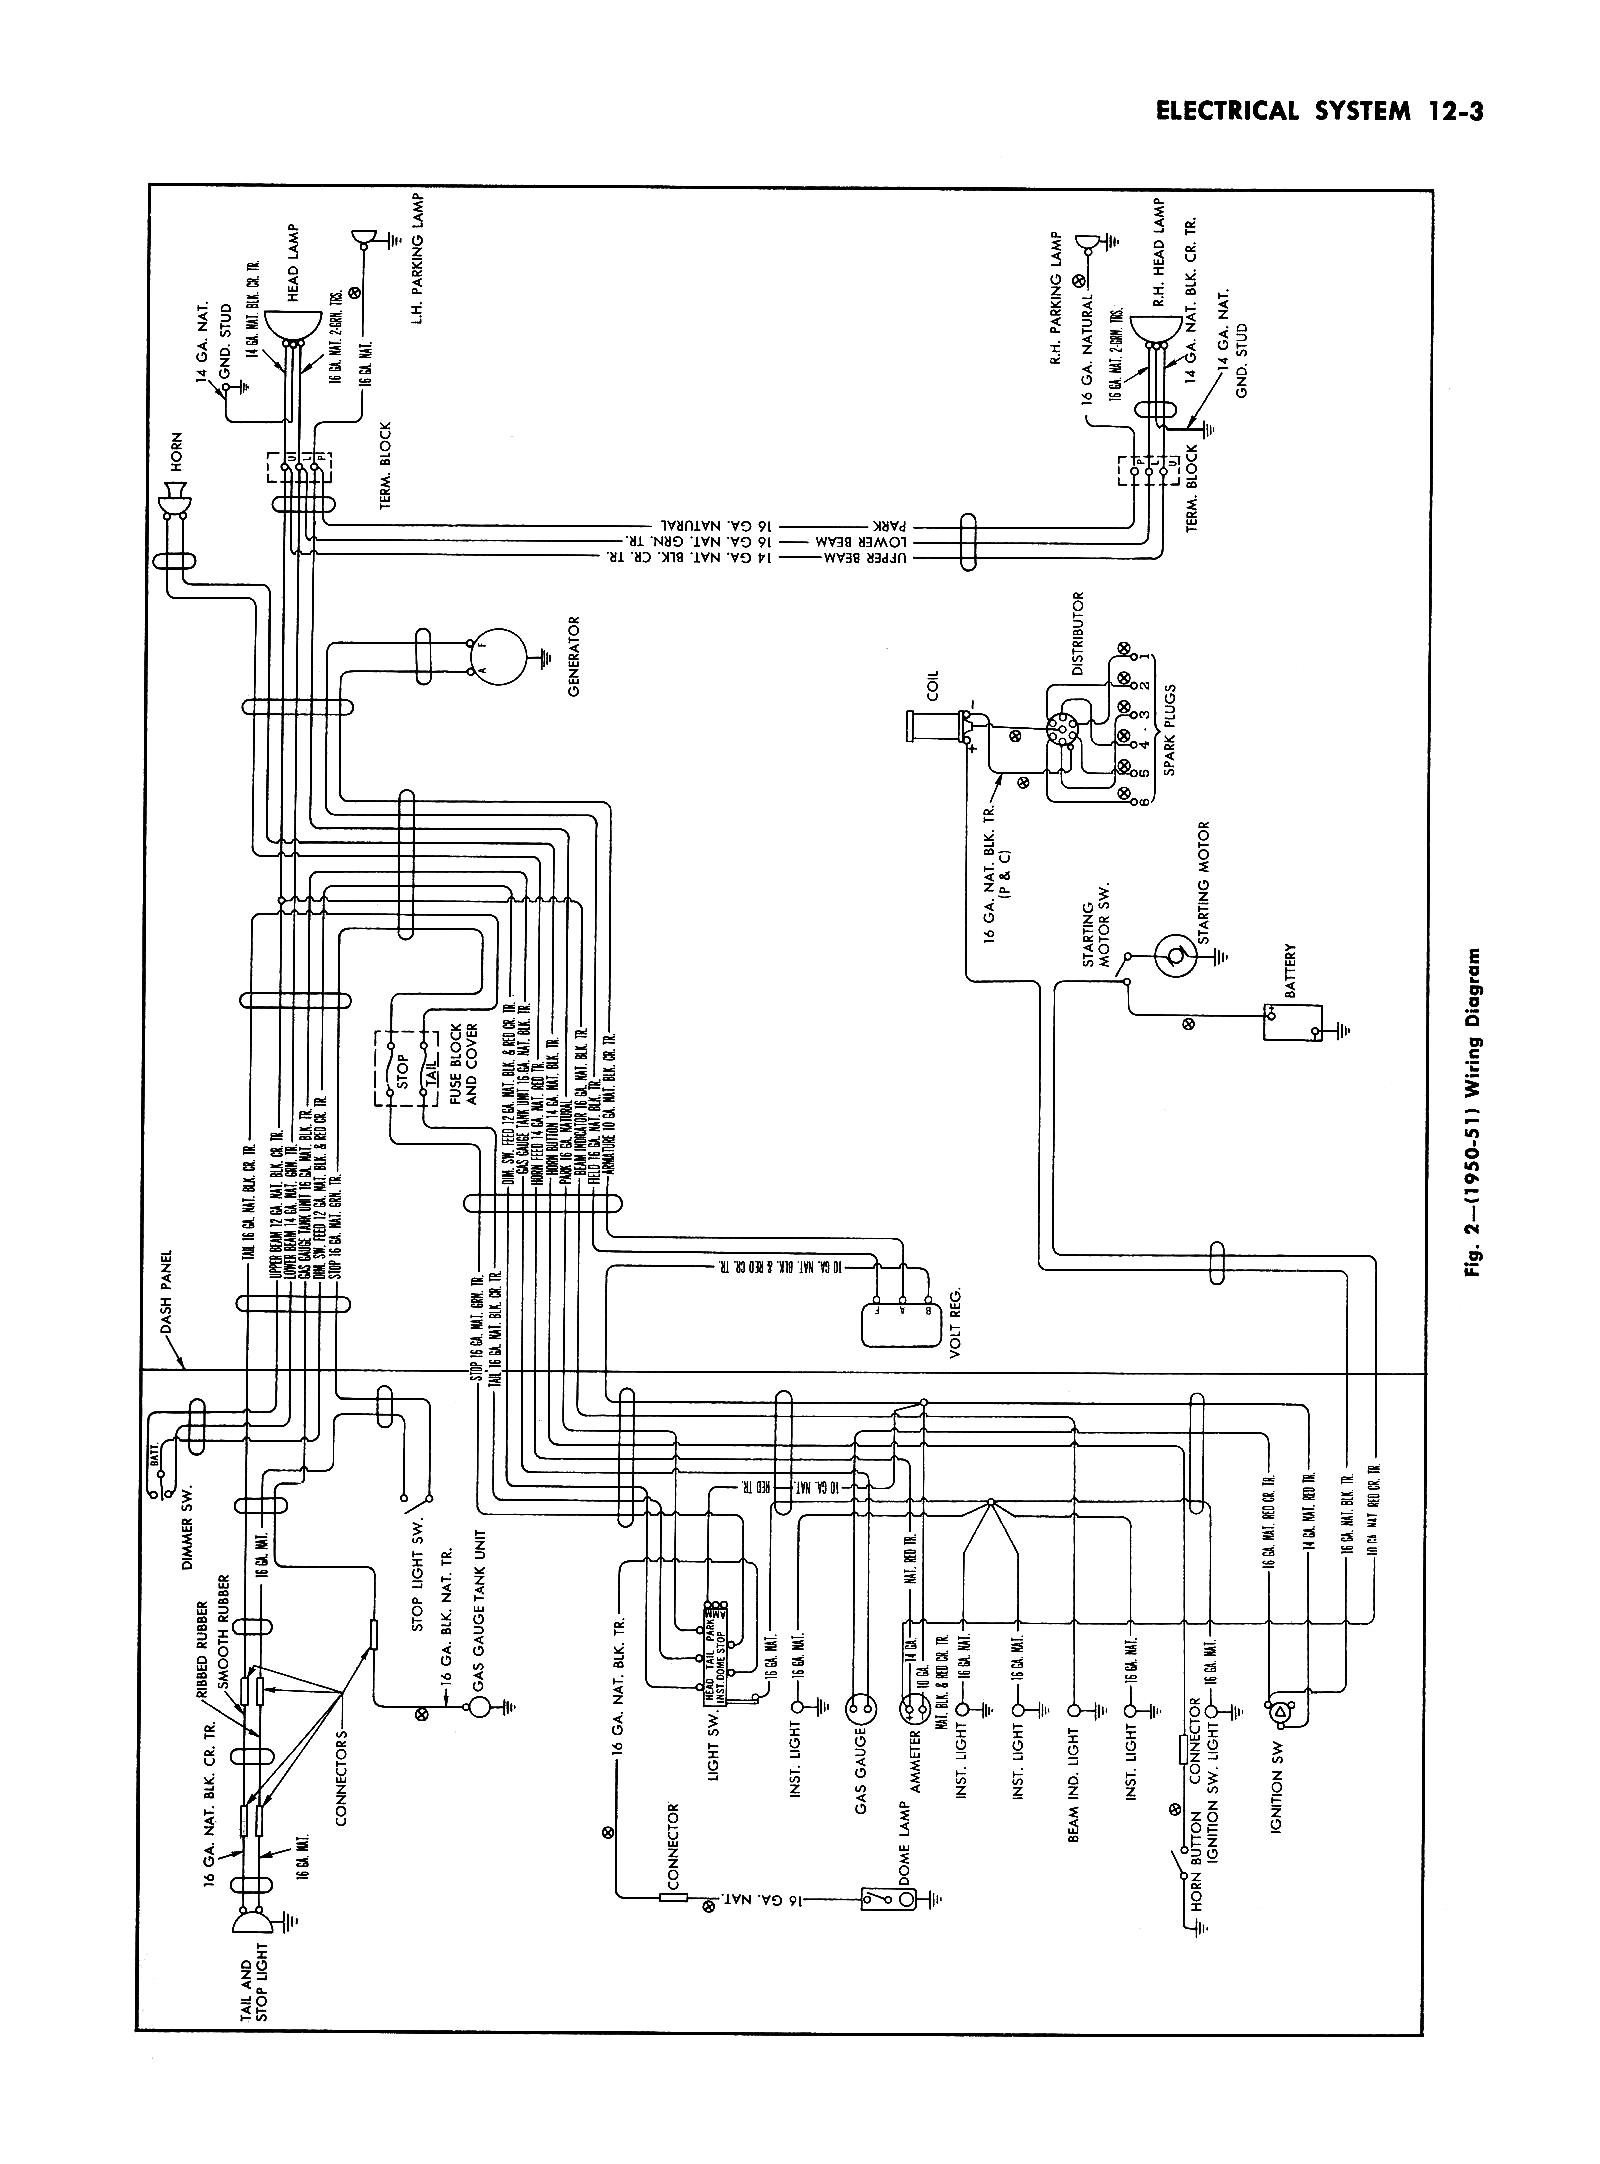 1954 hudson wiring diagram